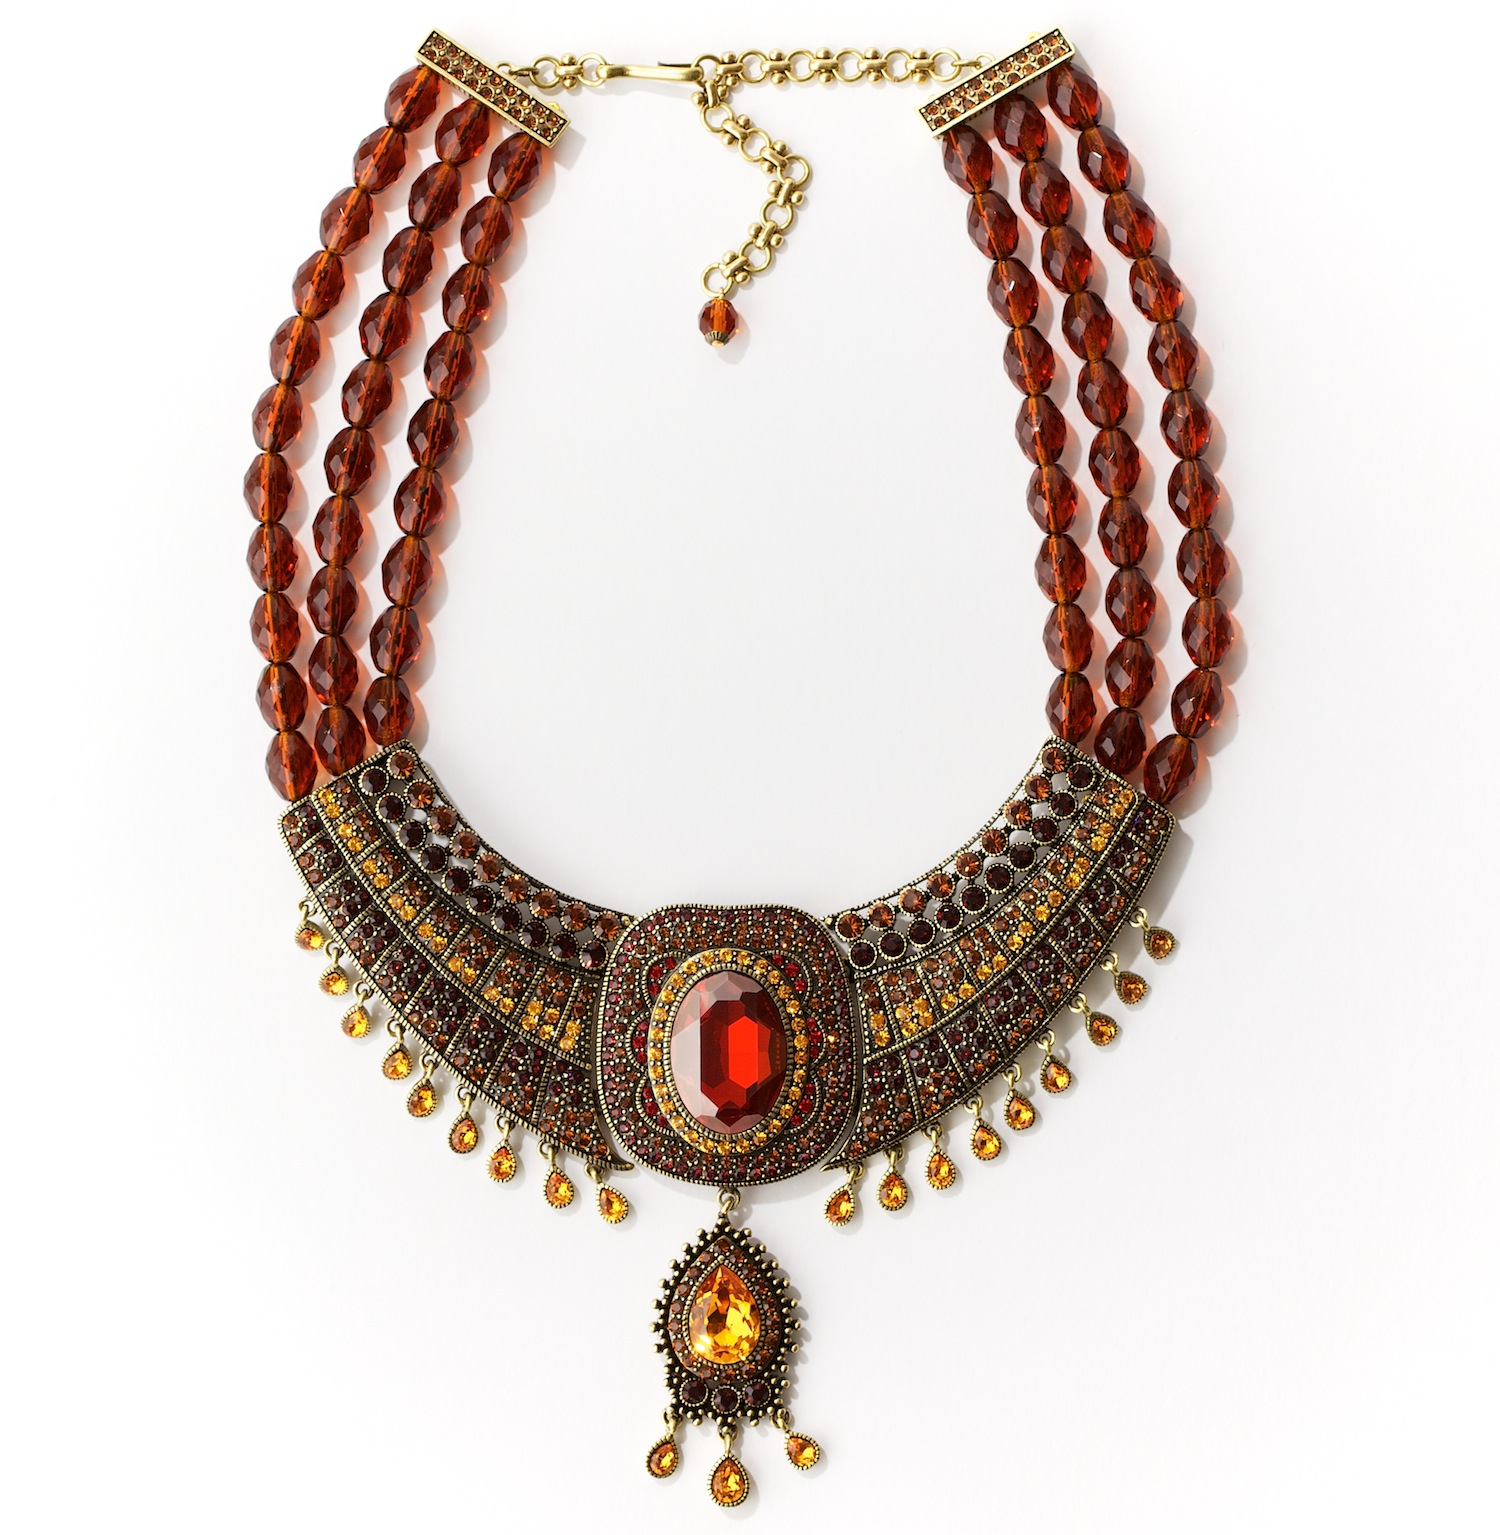 Padparacha Indian Statement Necklace